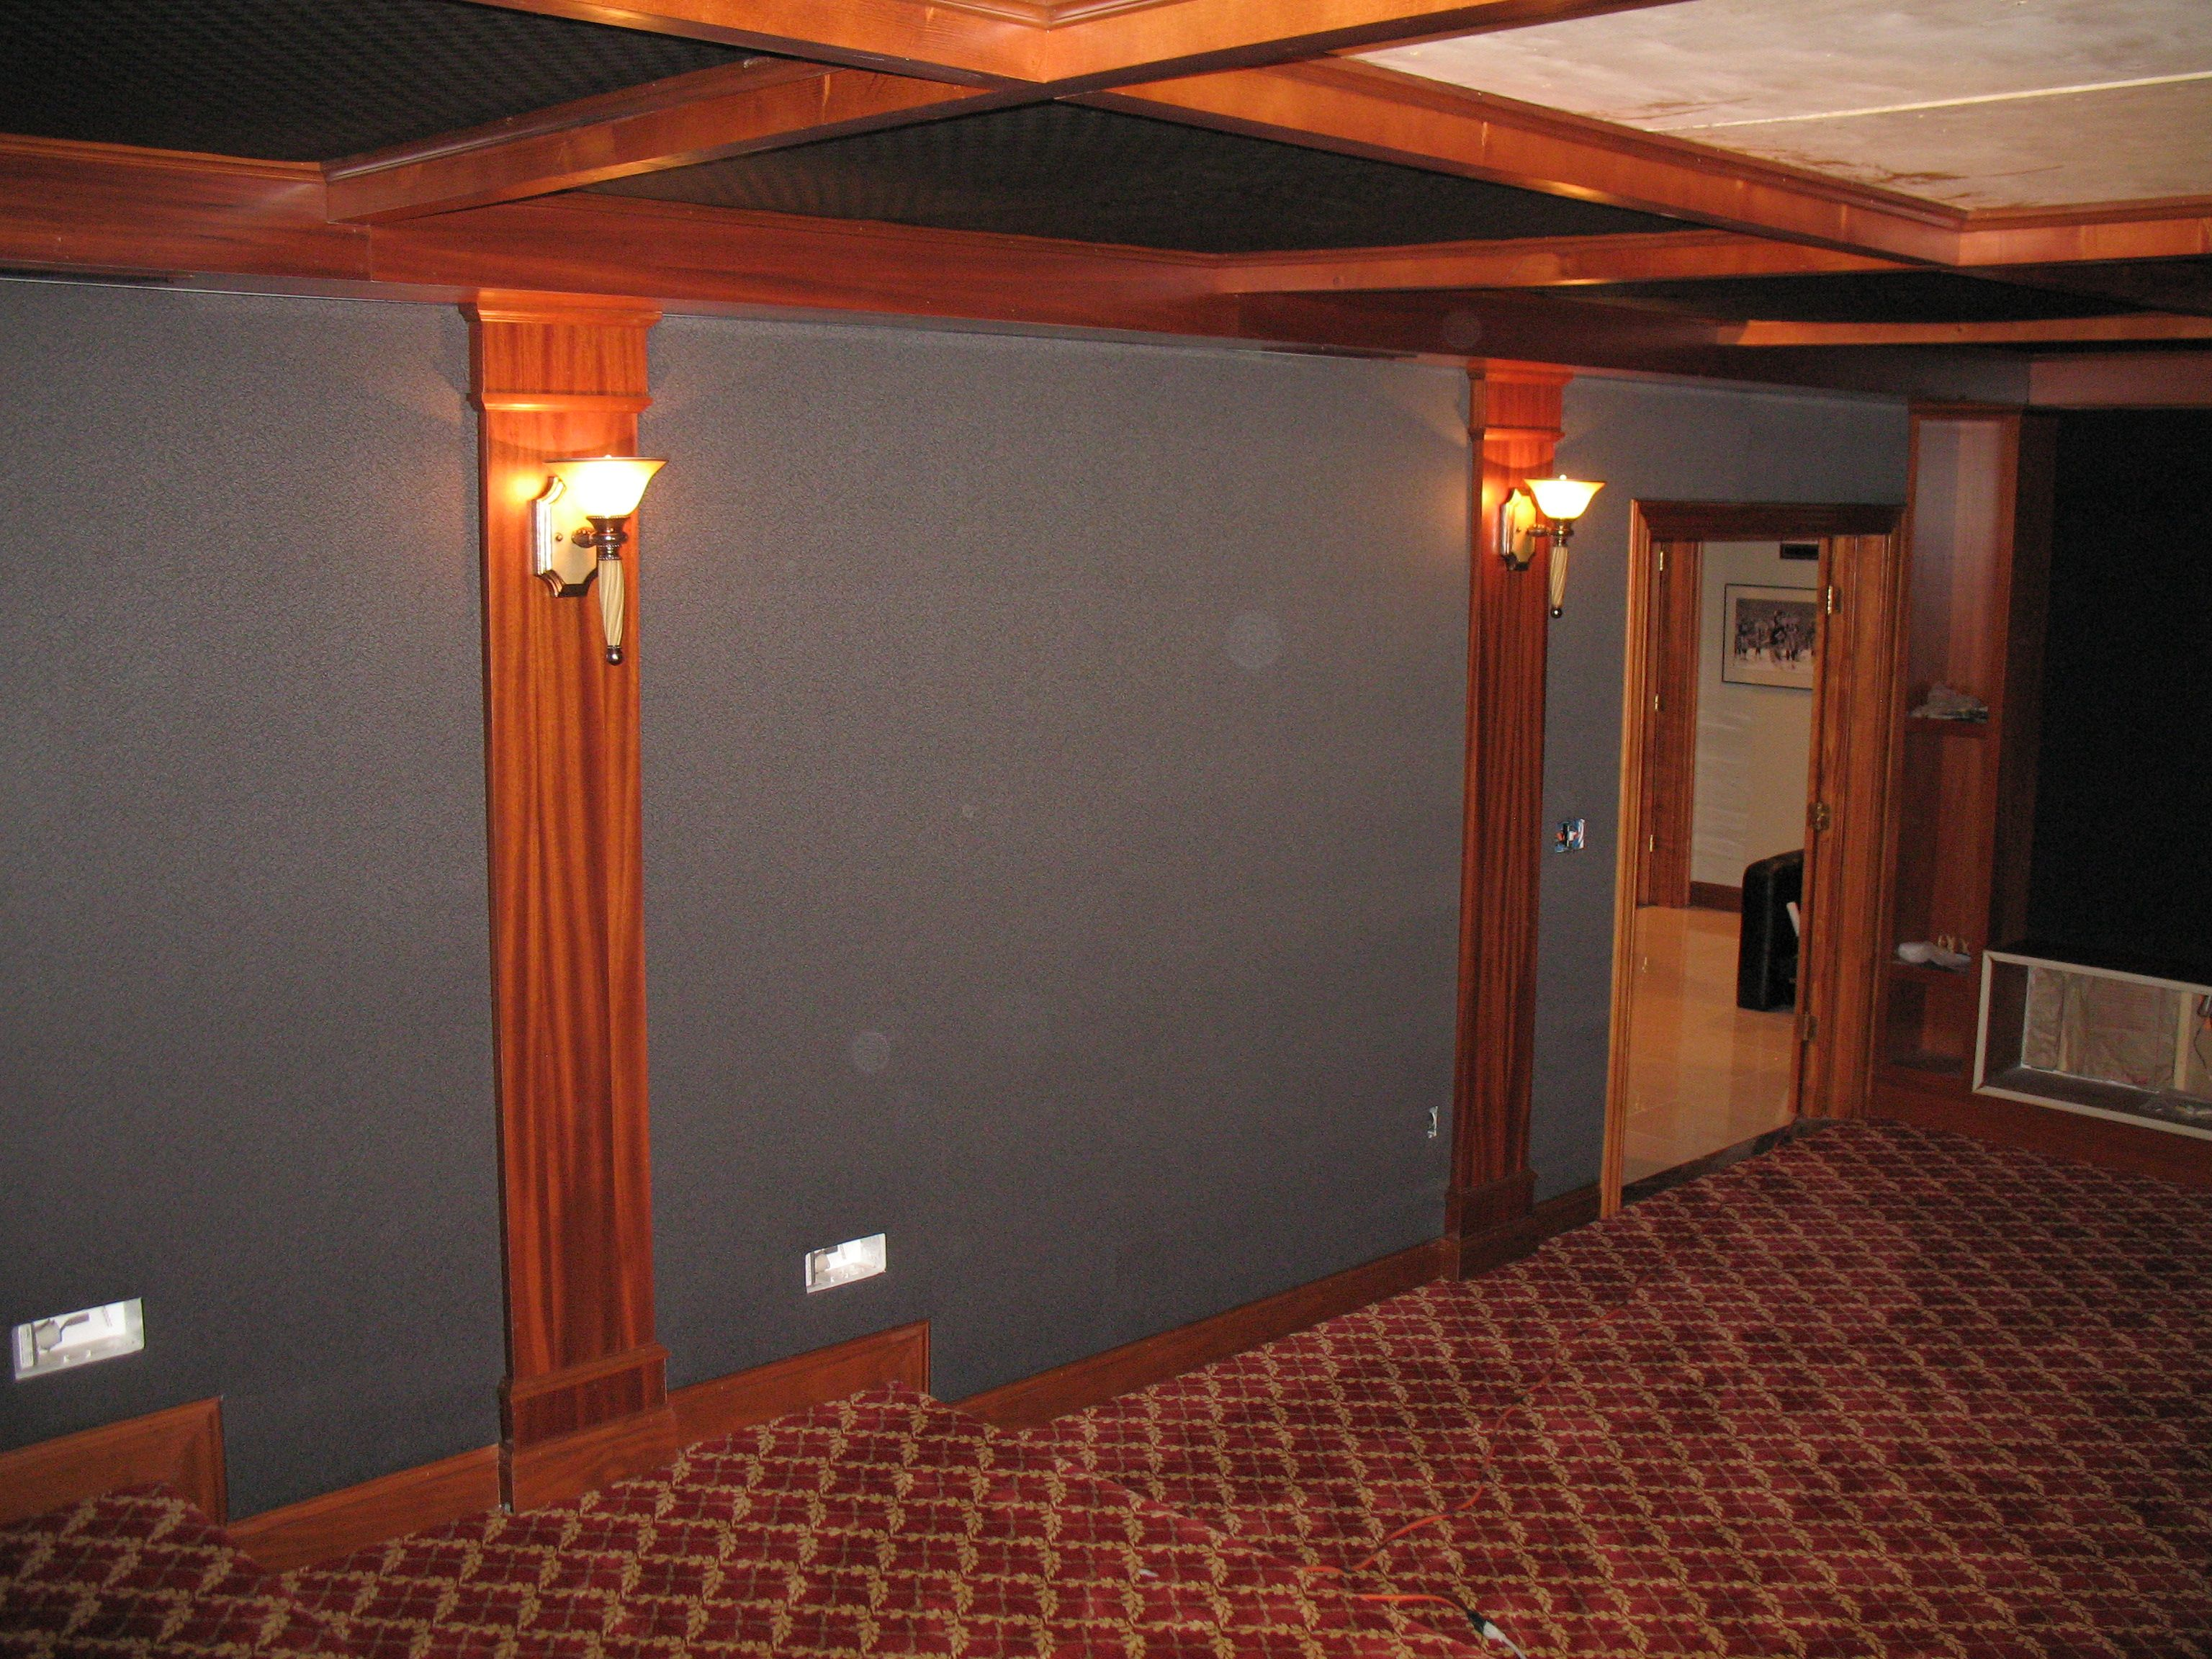 This Design Called For Full Wall Coverage Of Acoustical Treatment And Our  Patented Stretch Fabric System · Stretch FabricHome TheaterAcoustic Part 89